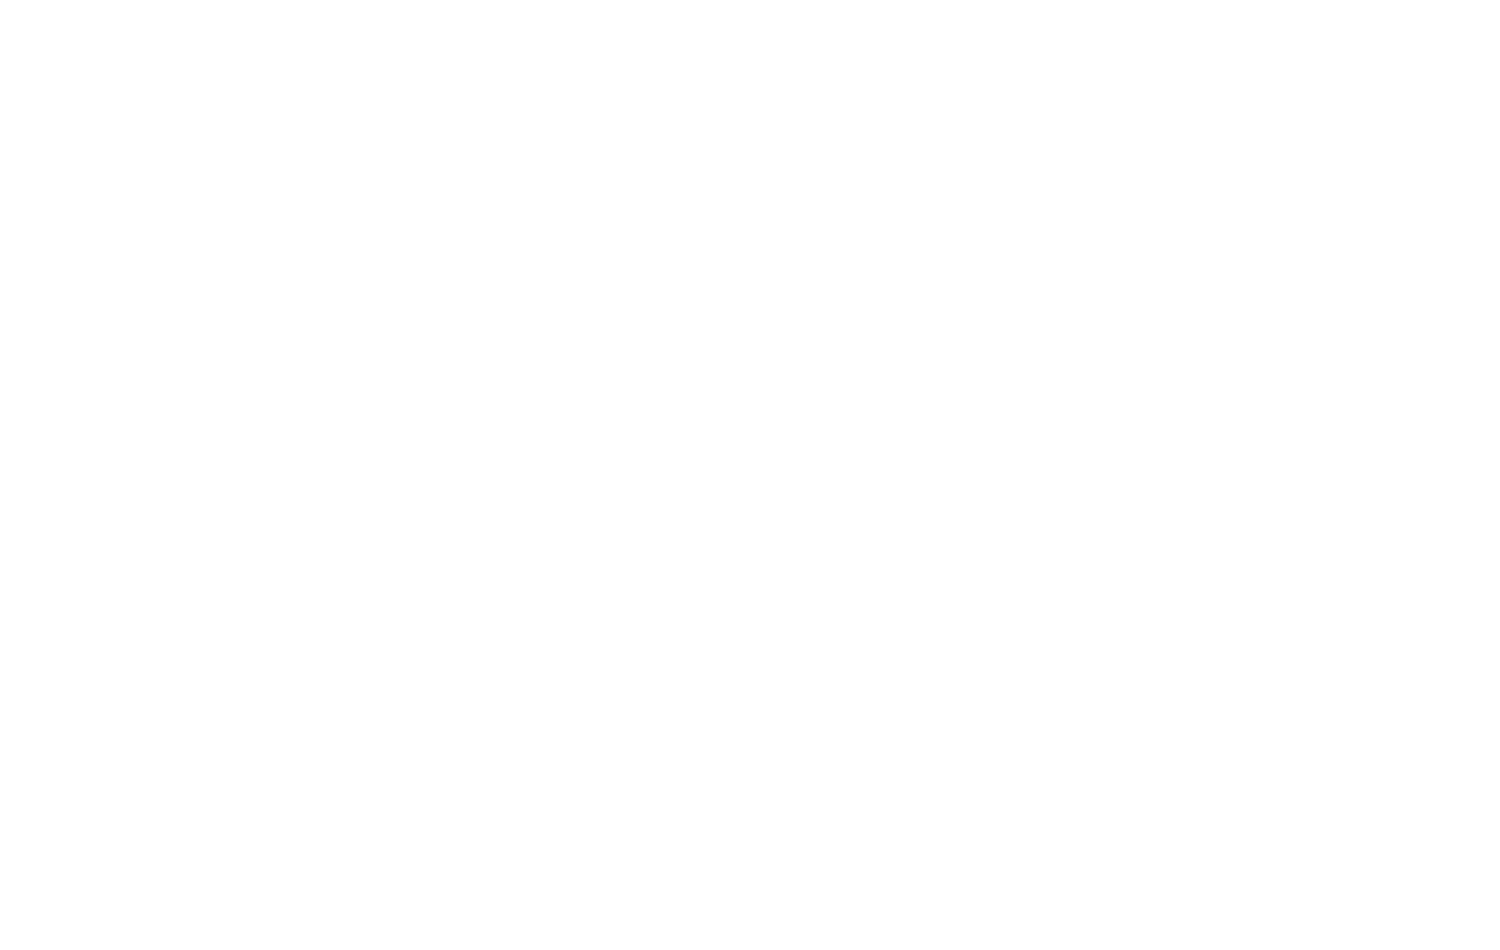 Win Thein & Sons Co., Ltd